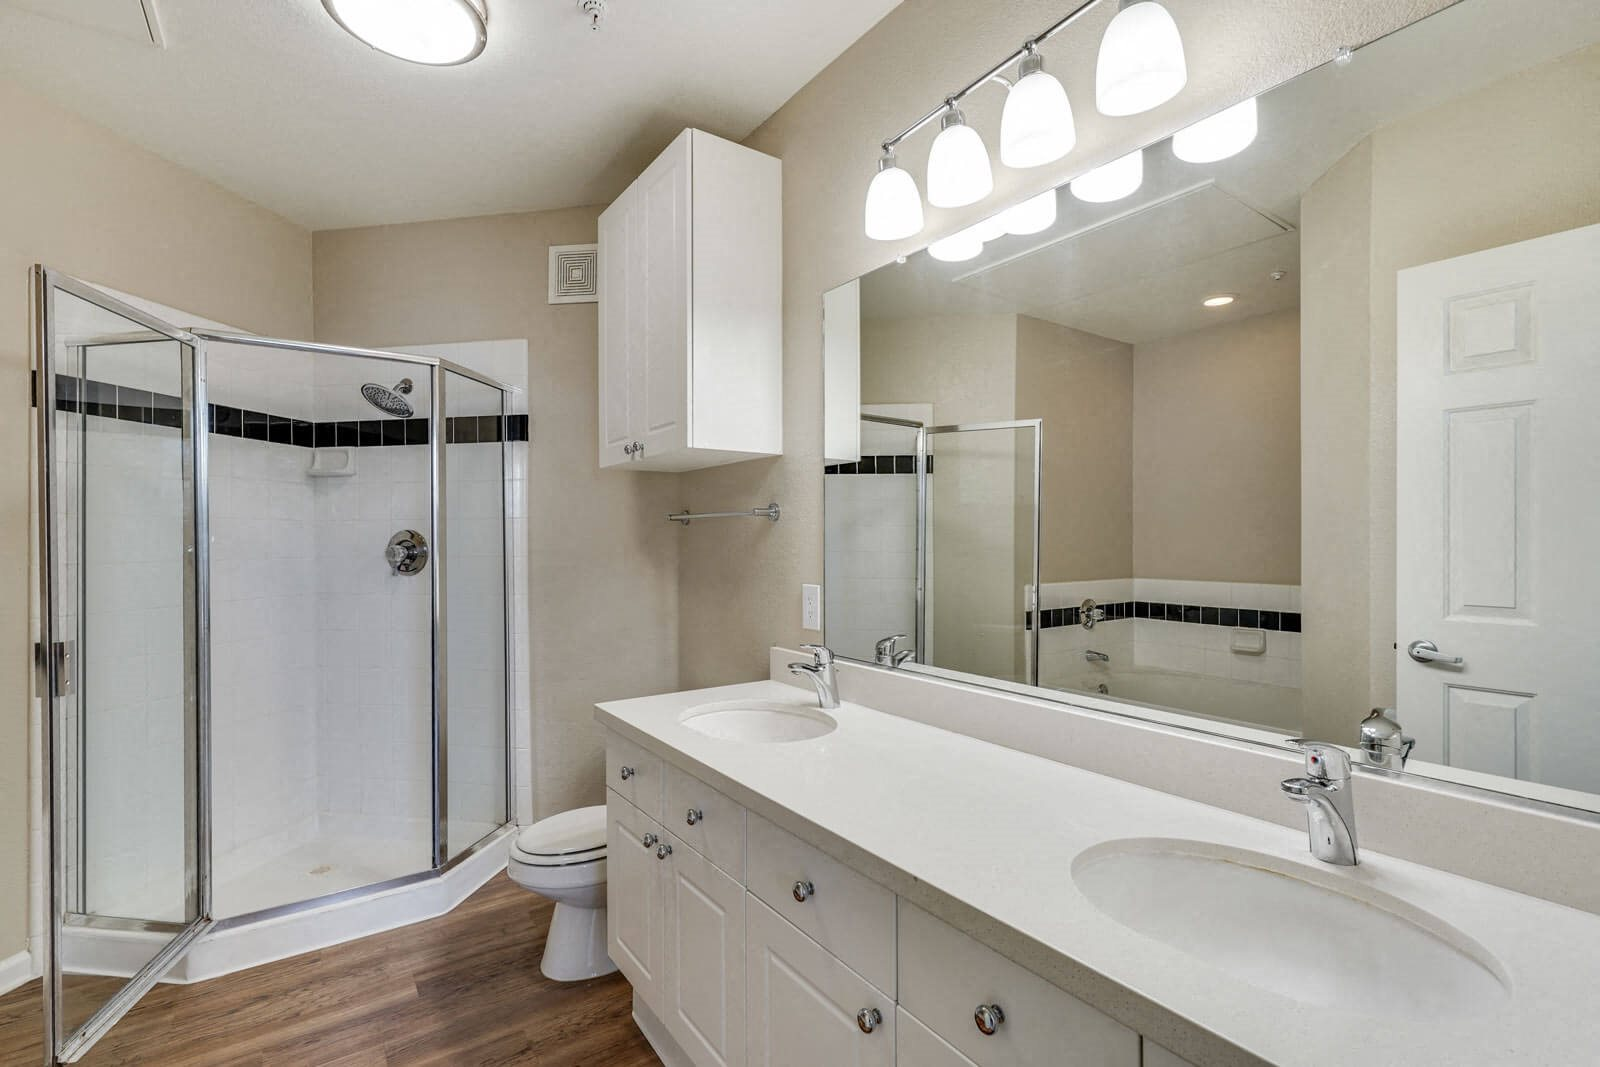 Renovated, Luxury Bathrooms at The Estates at Park Place, 3400 Stevenson Boulevard, CA